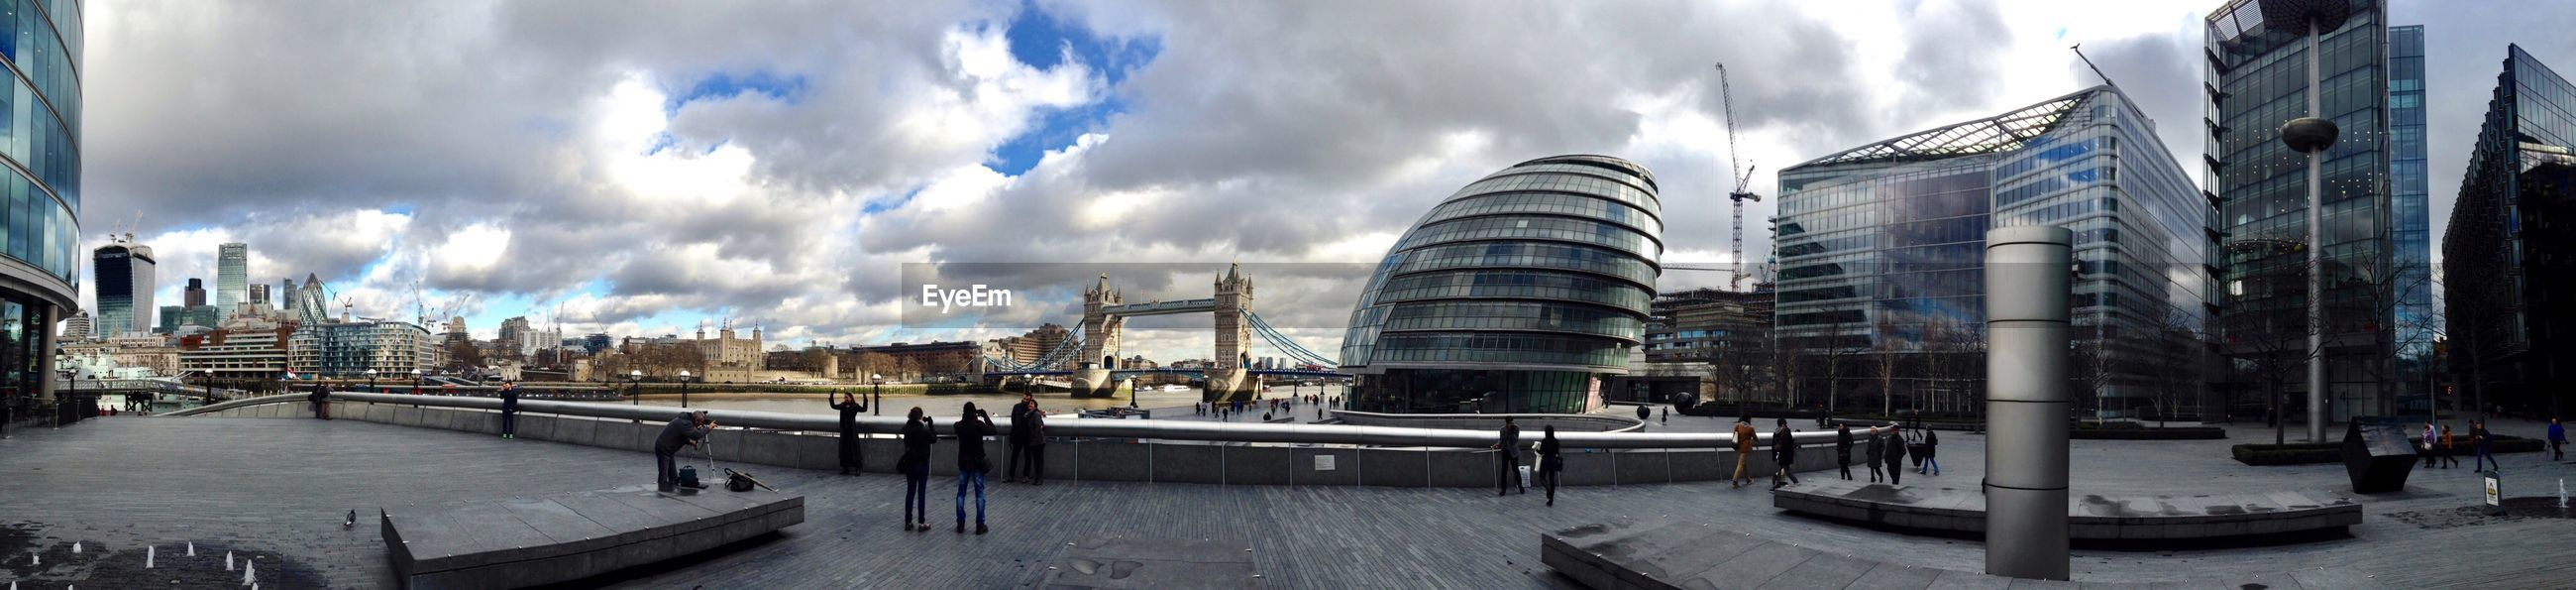 Panoramic view of london waterfront against cloudy sky